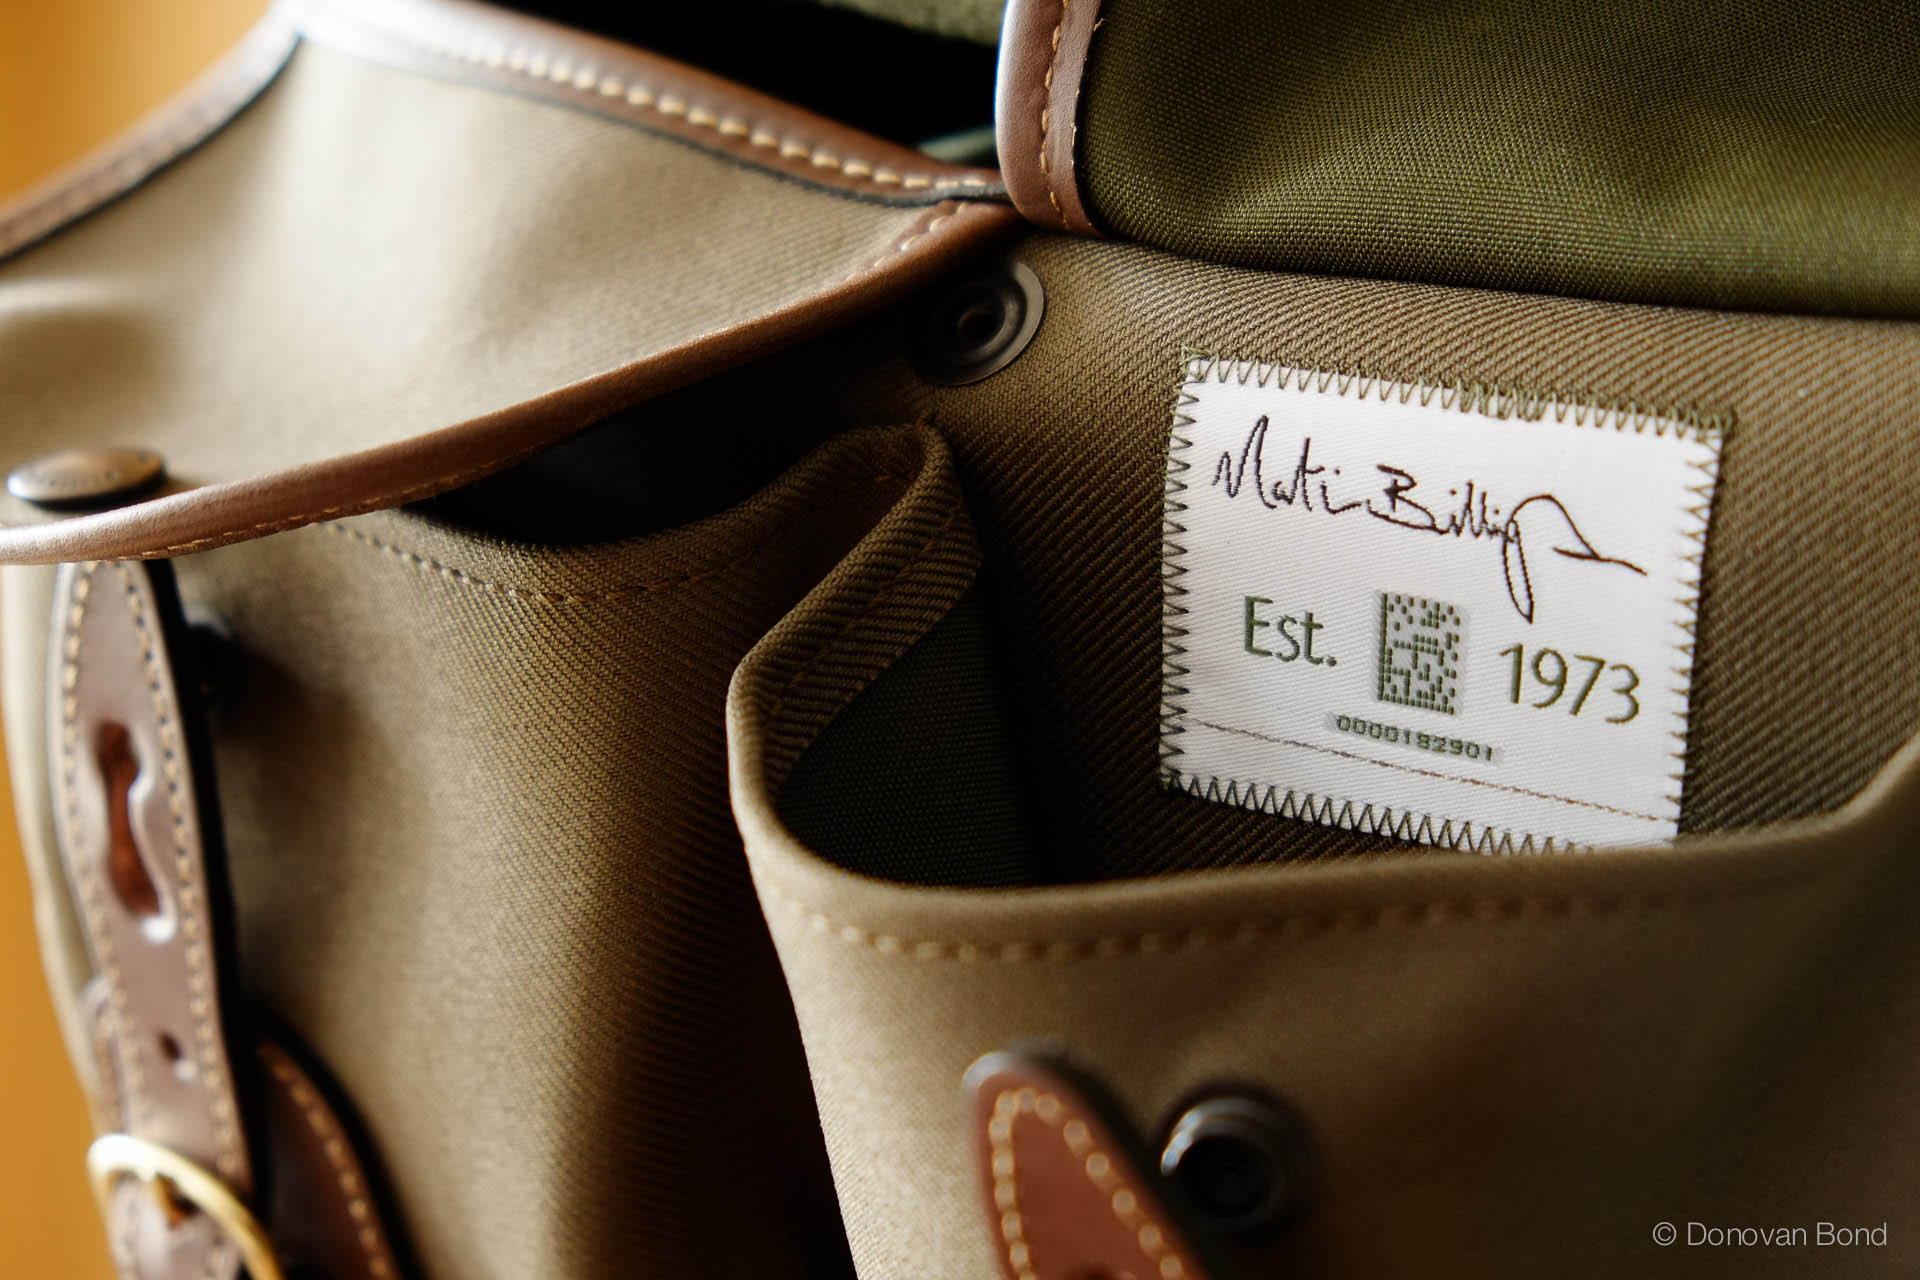 The Billingham seal of approval, and serial number. What other camera bag comes with a serial number? Billingham know their target.